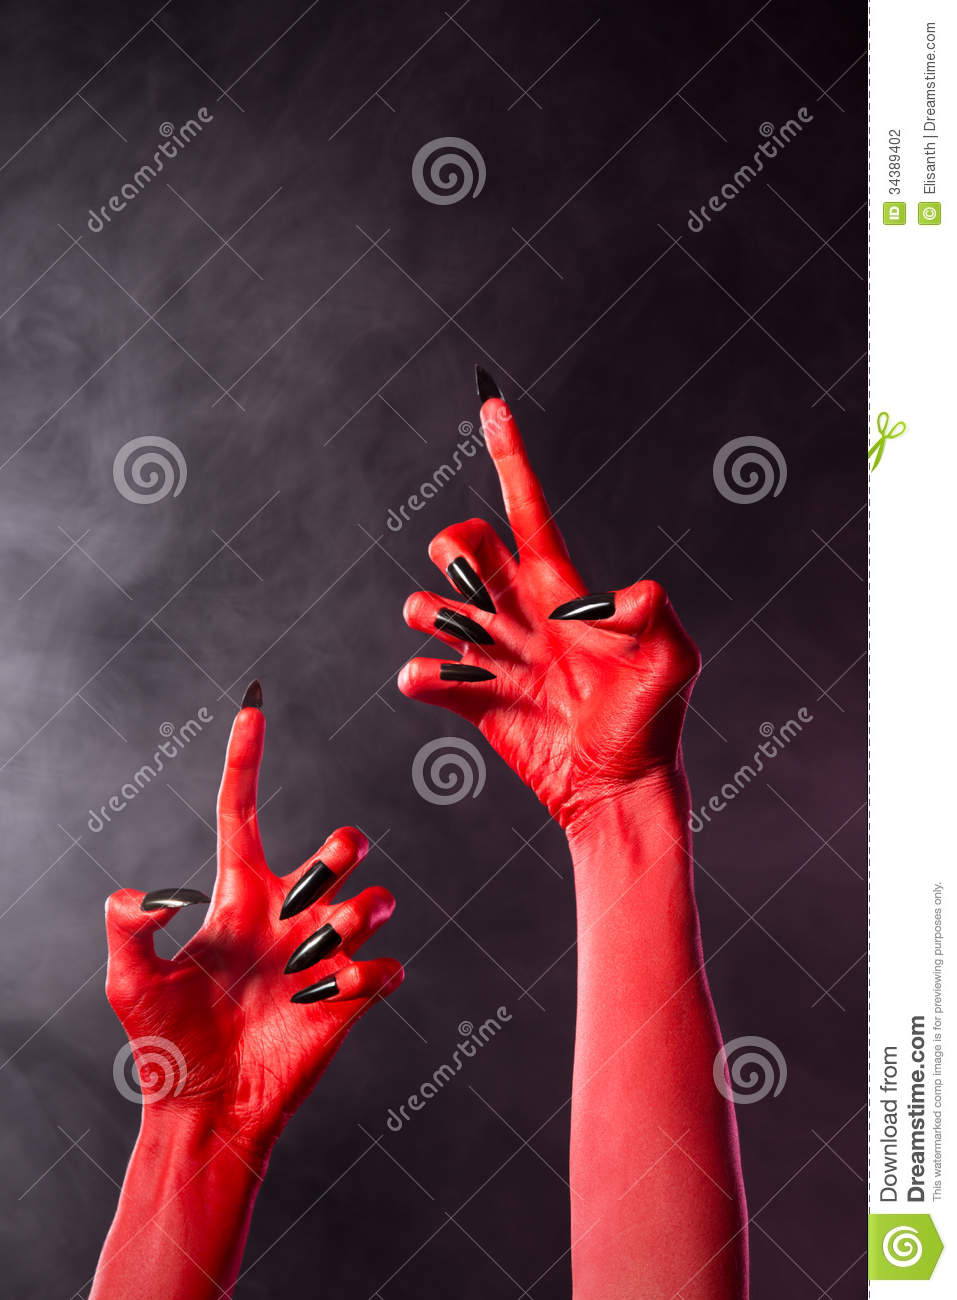 Creepy Red Devil Hands With Black Nails Stock Photography ...